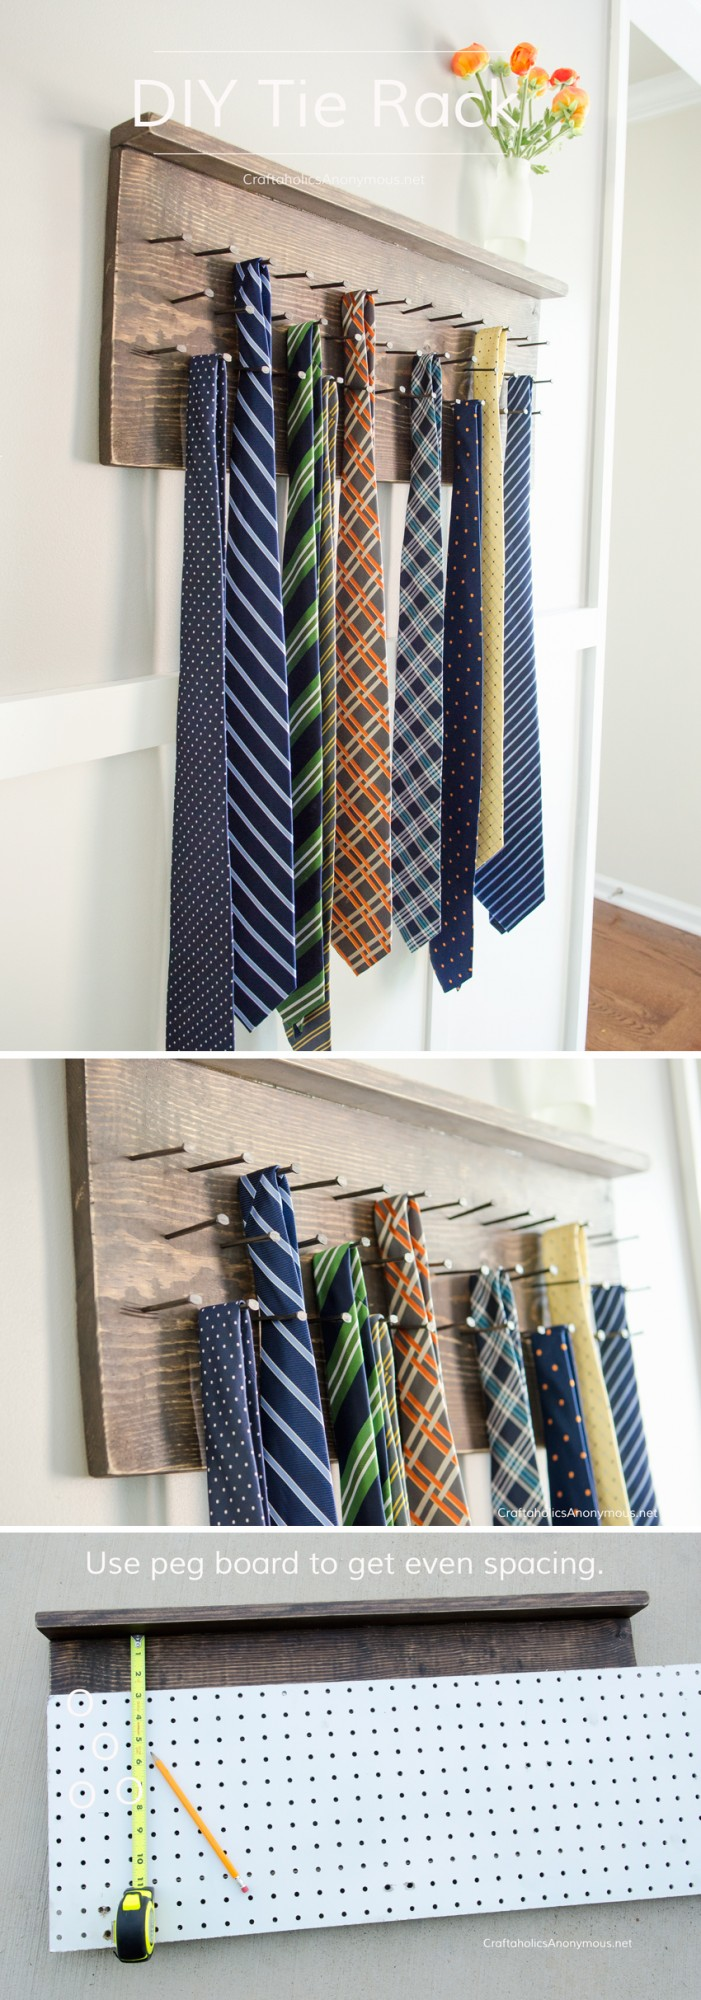 Ana white diy tie rack tutorial featuring craftaholics for Craft ideas for men s gifts